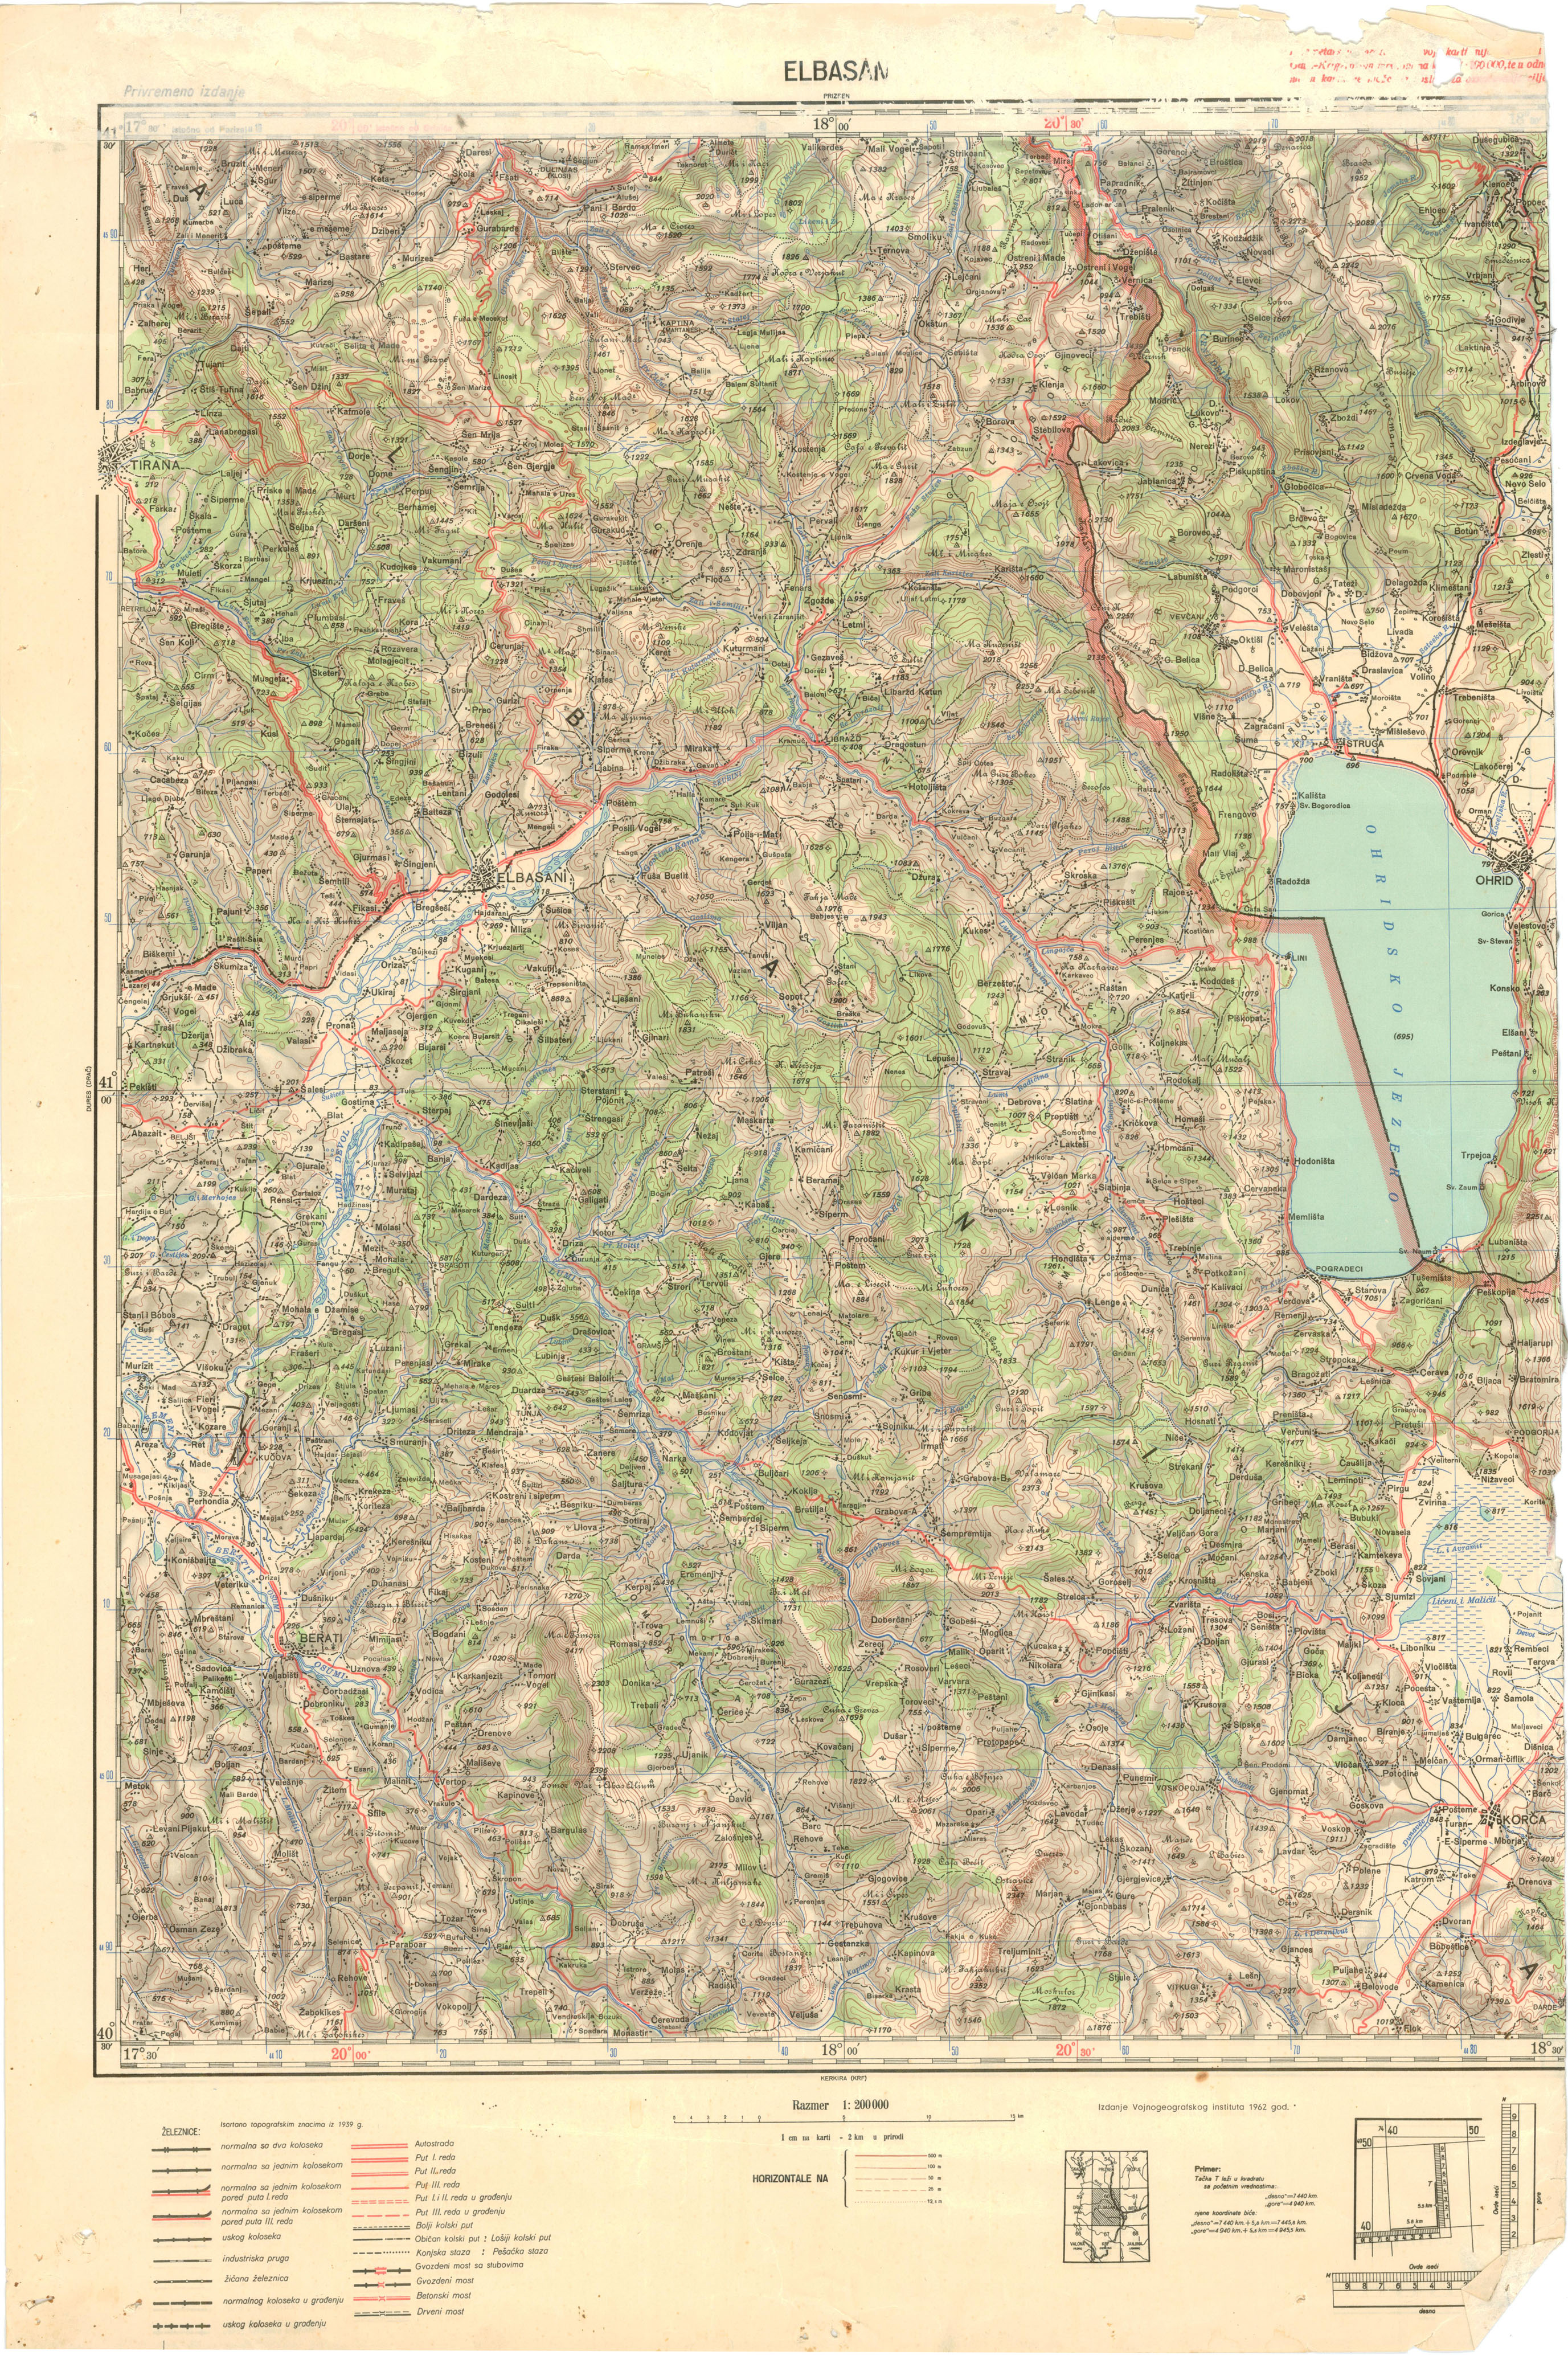 Detailed Topographical Maps of Macedonia and Surrounds on